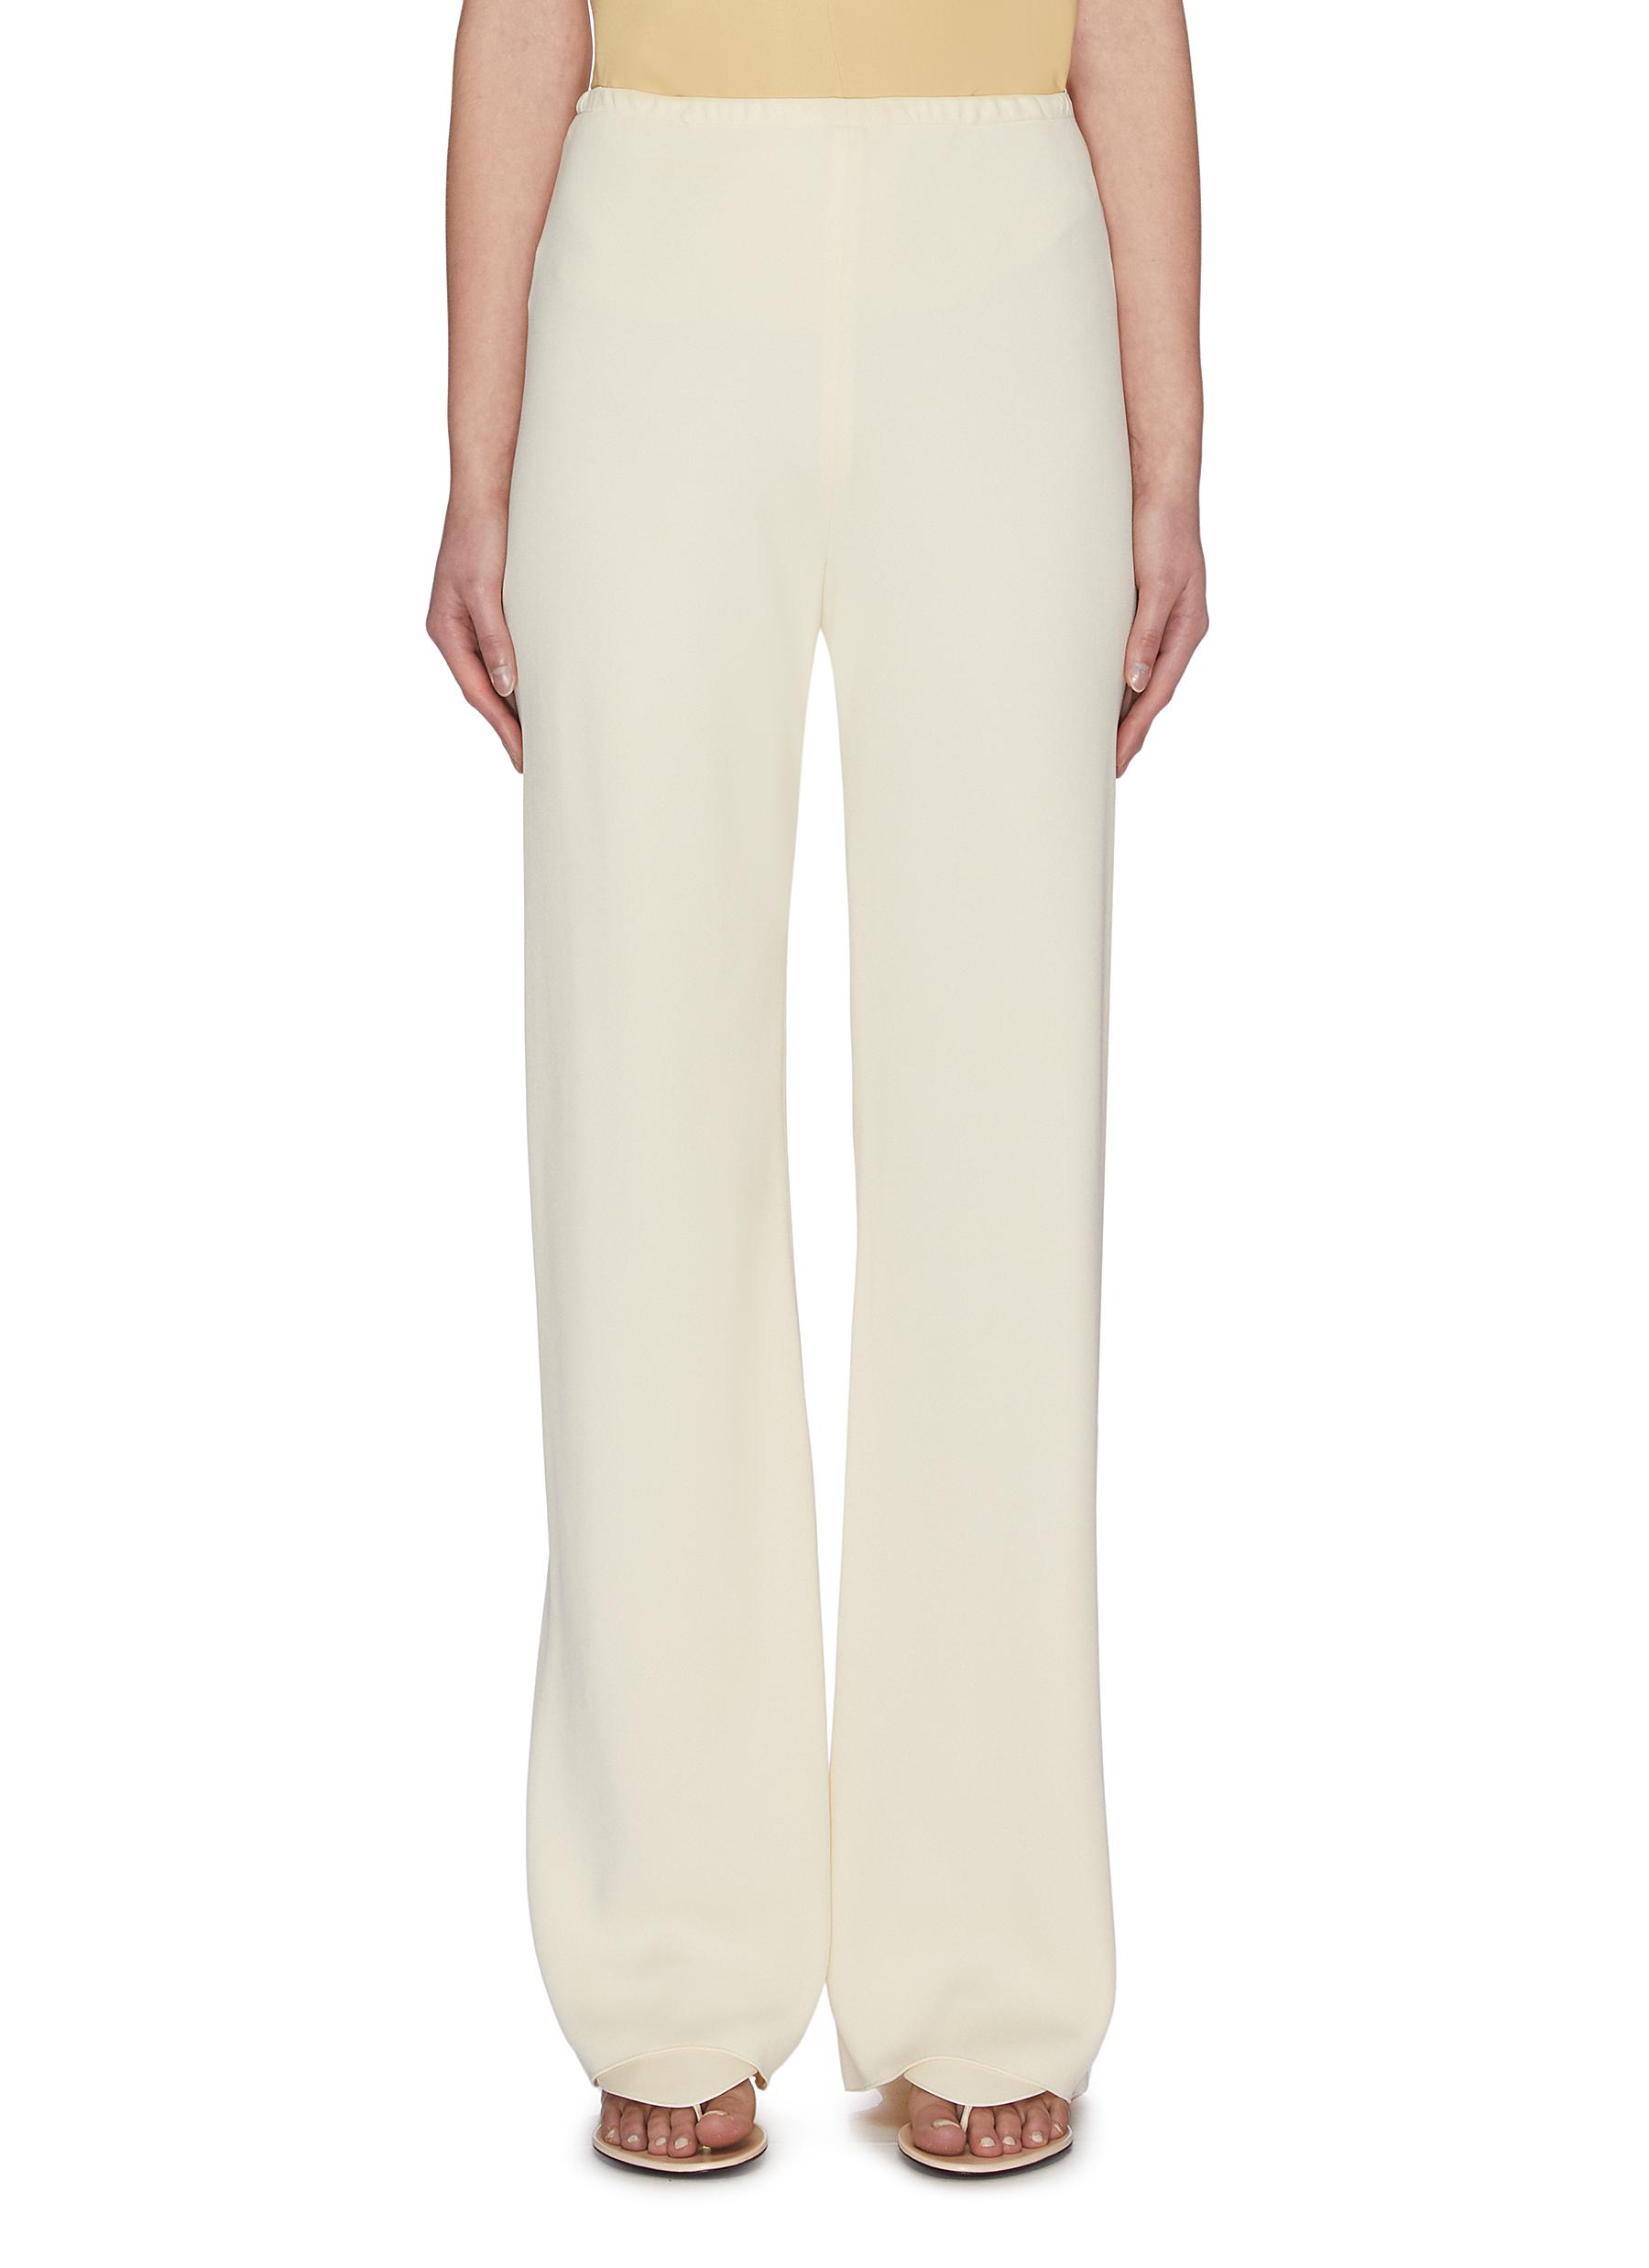 Buy The Row Pants & Shorts 'Gala' cady wide leg pants